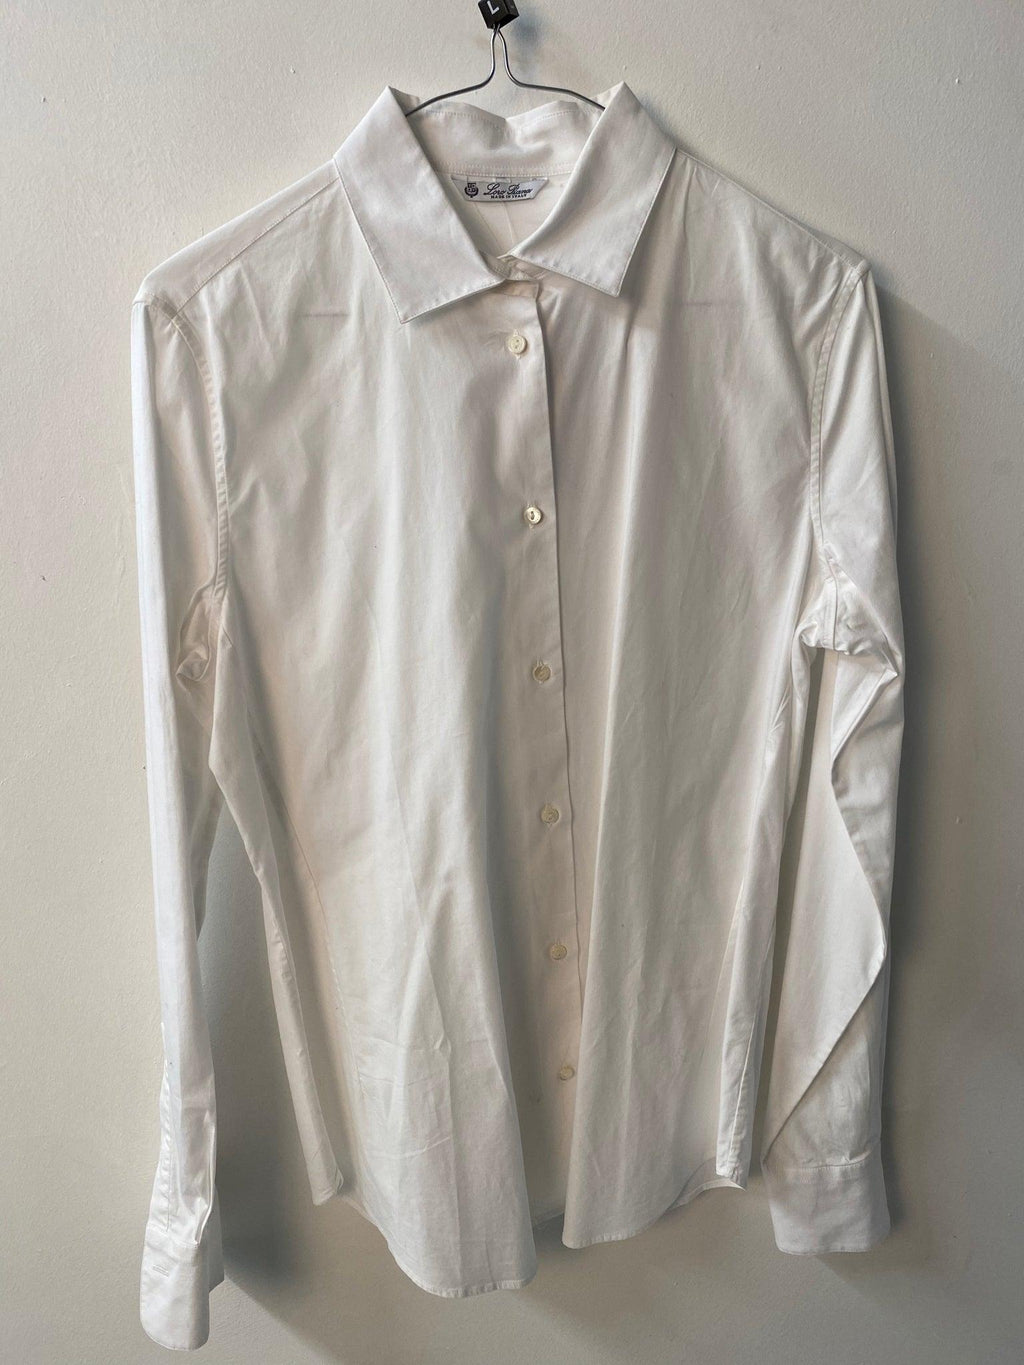 Loro Piana White Cotton Shirt Size IT48 (UK16)